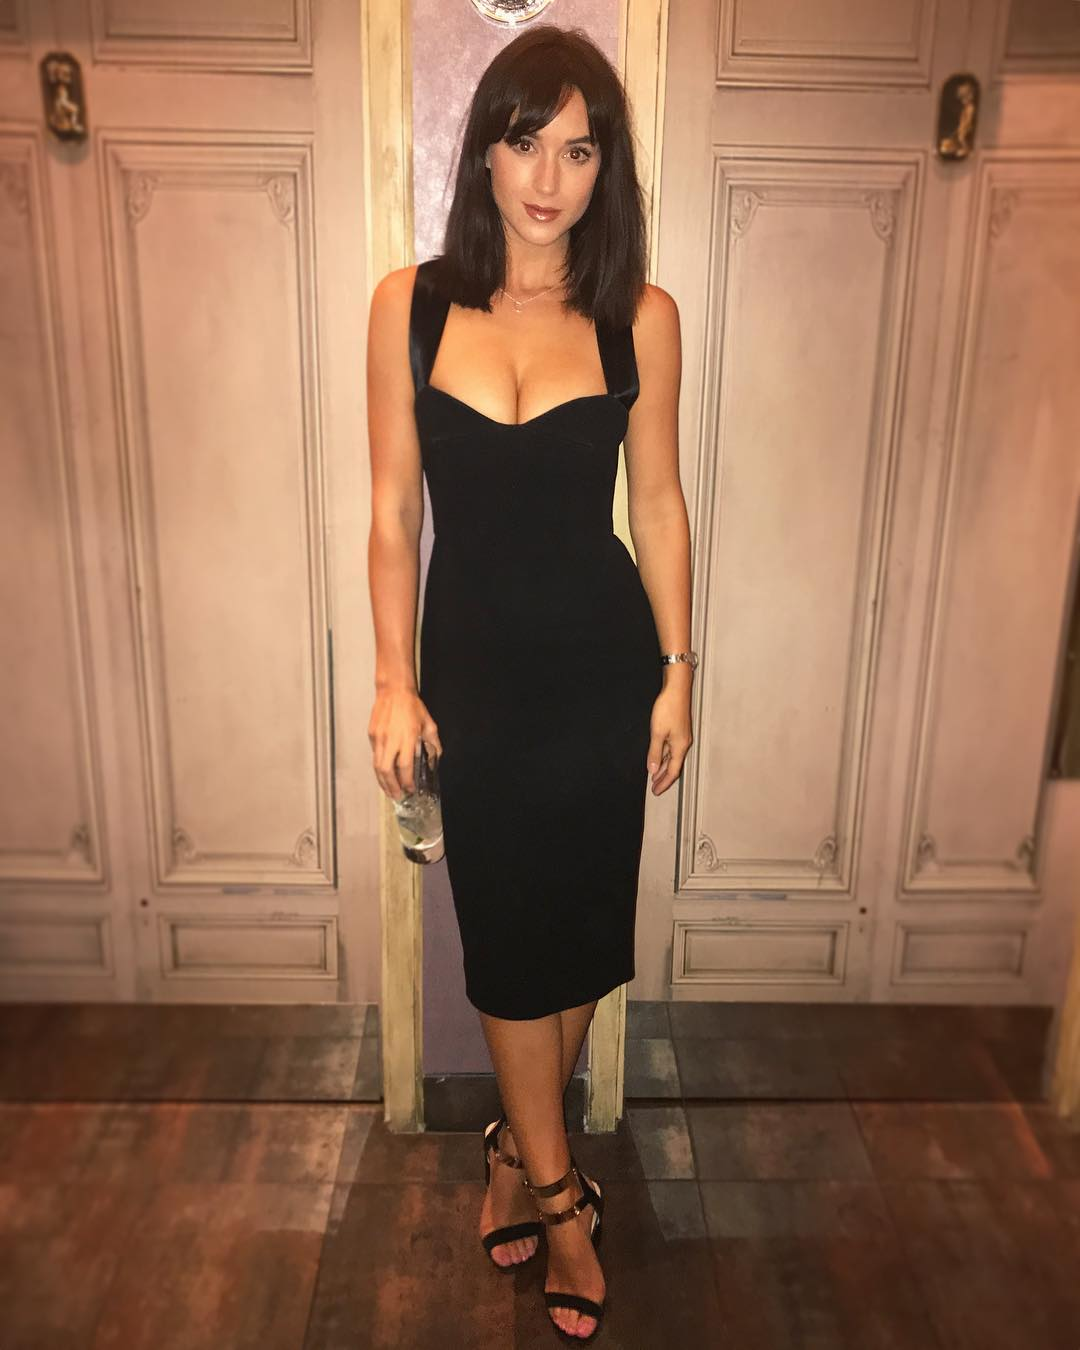 Rosie Jones Joe Wicks Wife 5 Fast Facts You Need To Know Heavy Com Последние твиты от rosie jones model (@rosiejonesmodel). rosie jones joe wicks wife 5 fast